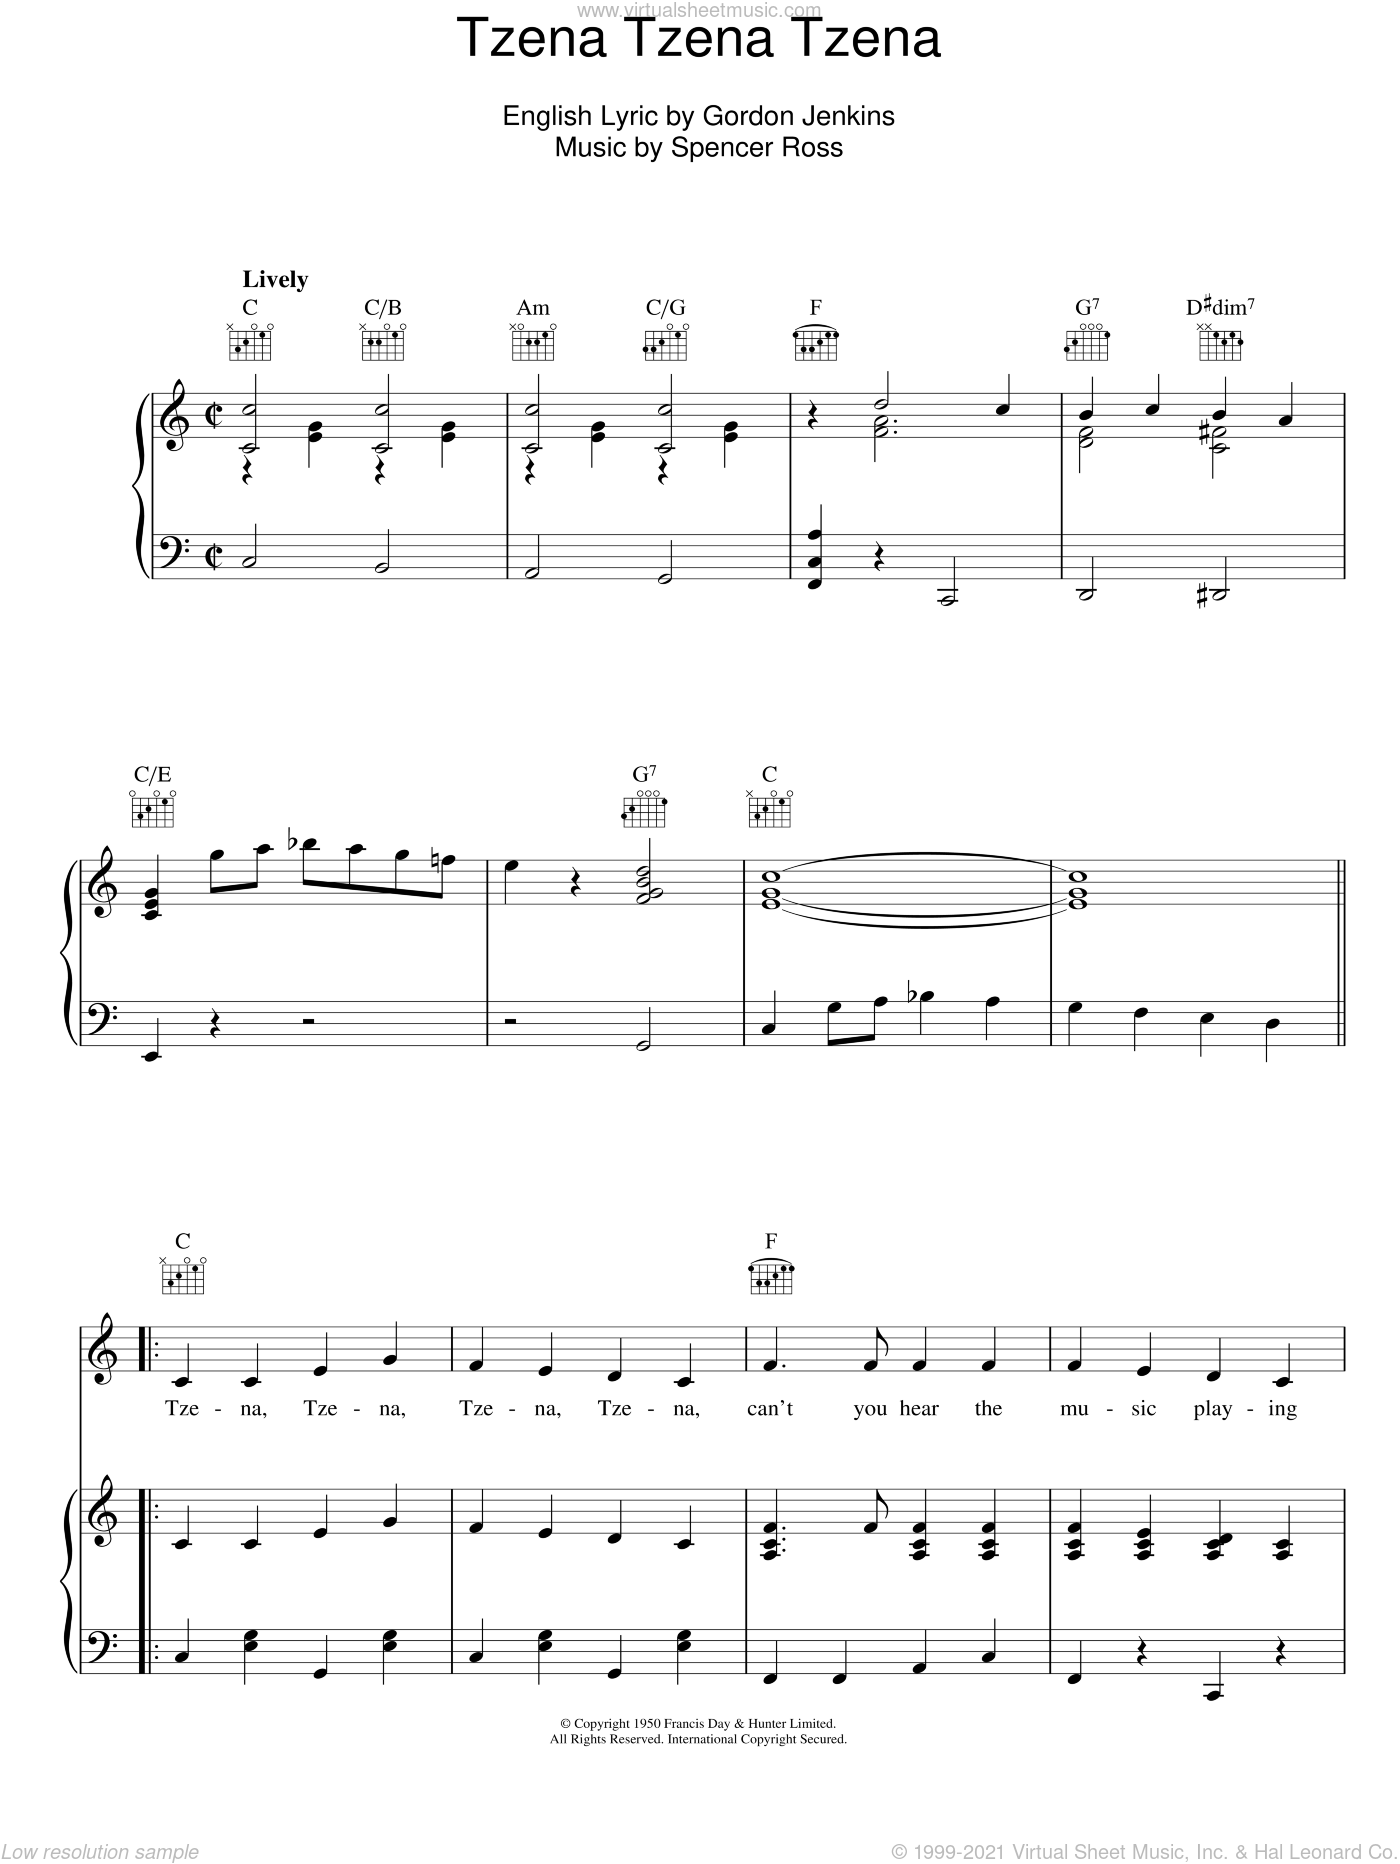 Tzena Tzena Tzena sheet music for voice, piano or guitar by Spencer Ross